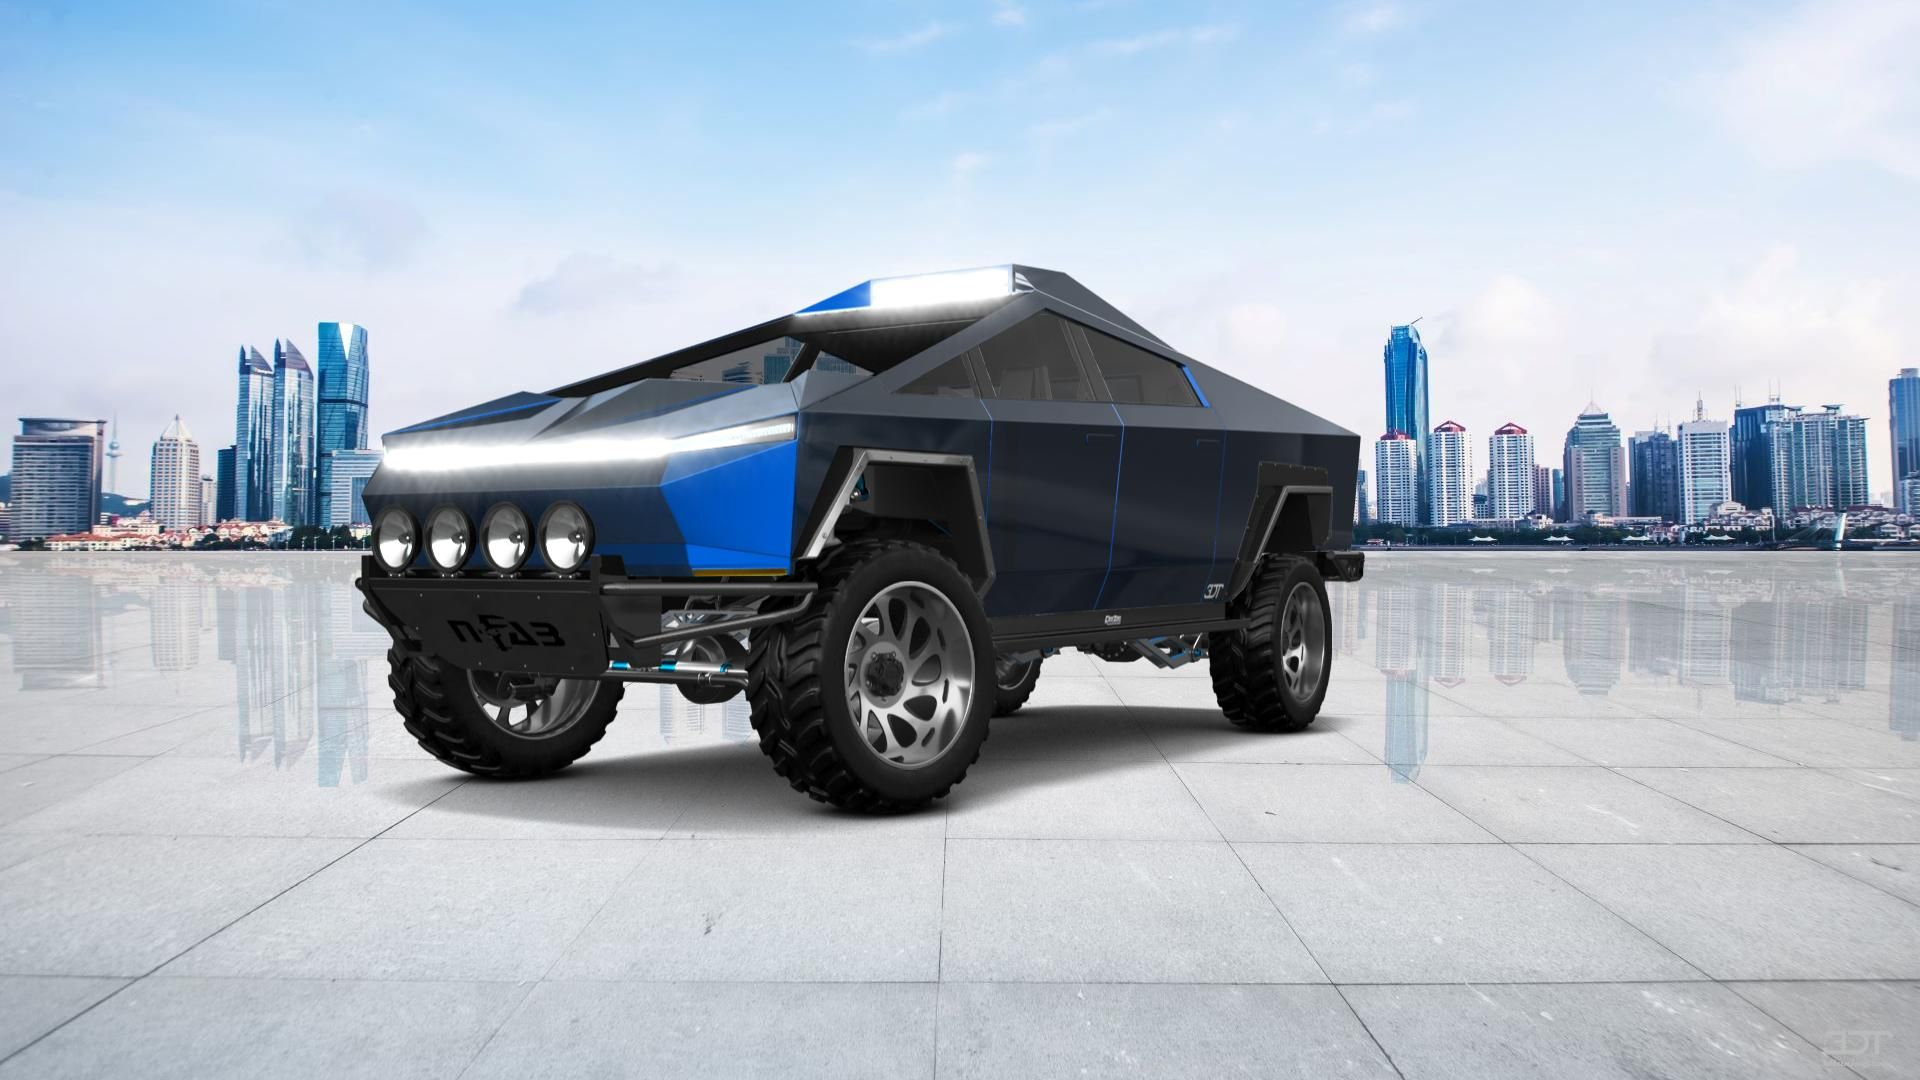 Checkout My Tuning Tesla Cybertruck 2021 At 3dtuning 3dtuning